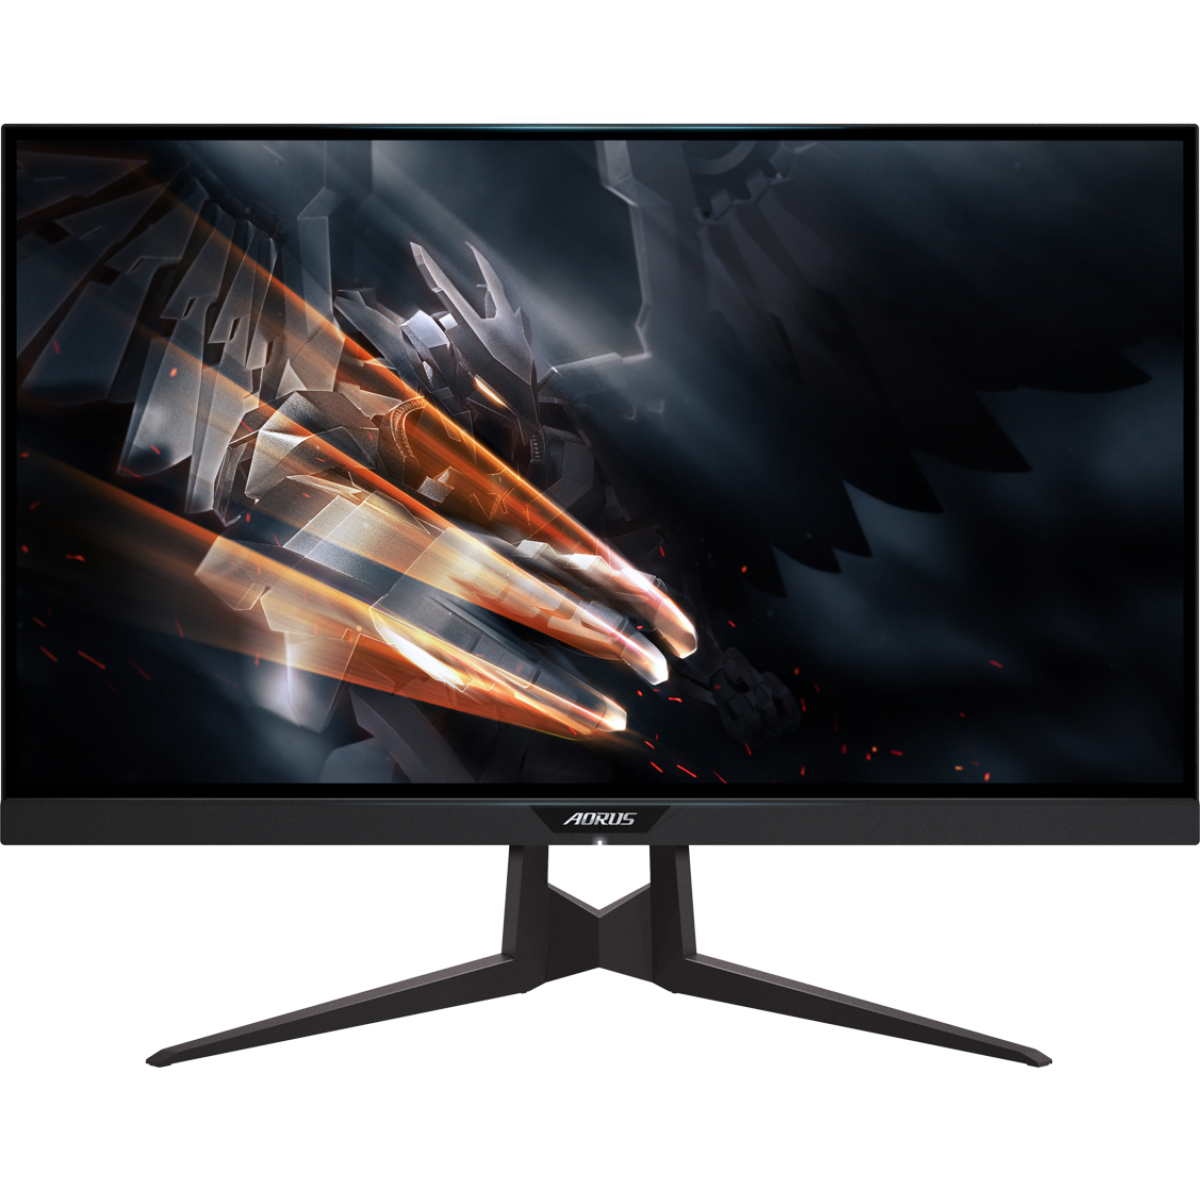 Monitor Gamer Gigabyte Aorus, 27 Pol, 144Hz, 1ms, FreeSync, HDMI, Display Port, AD27QD